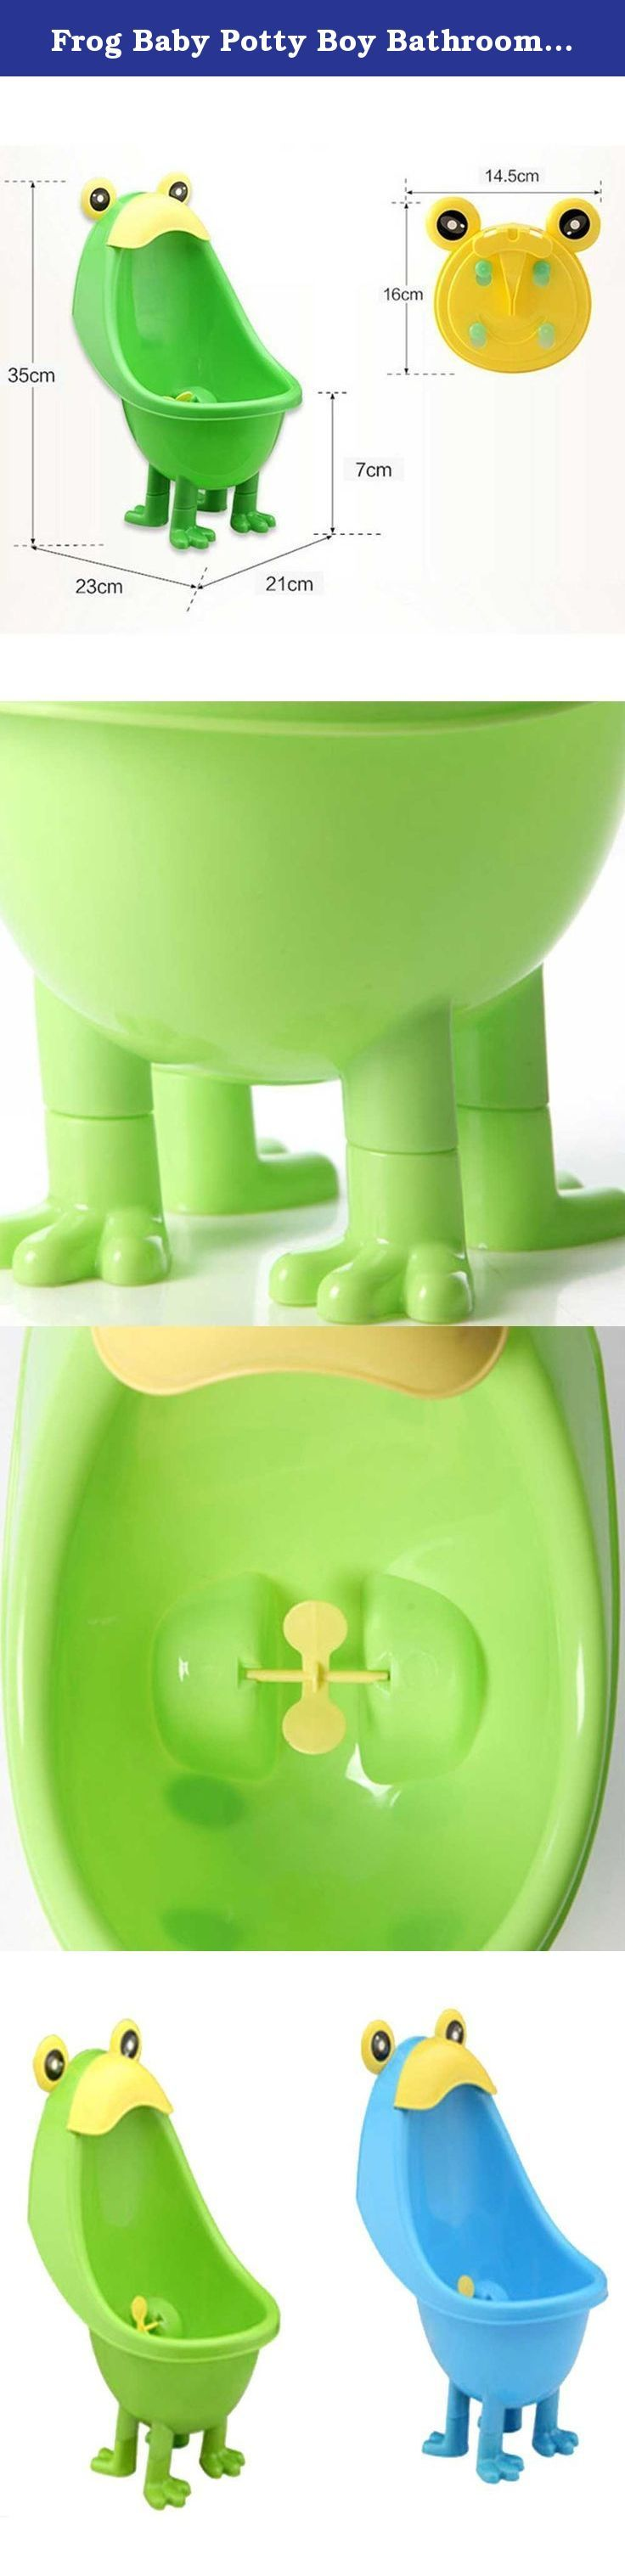 Frog Baby Potty Boy Bathroom Pee Trainer Standing Urinal Kid Wall-Mounted Toilet Bathroom Potty Children Early Education Trainning (Green). Description Environmentally friendly material, nontoxic and no peculiar smell. Urine groove separation design and light surface makes the item easy to clean. The cute frog training urinal is designed for the little boy who wants to grow up. The suction cups allow you to adjust the position of item according to baby's height. The 1100ml capacity is…